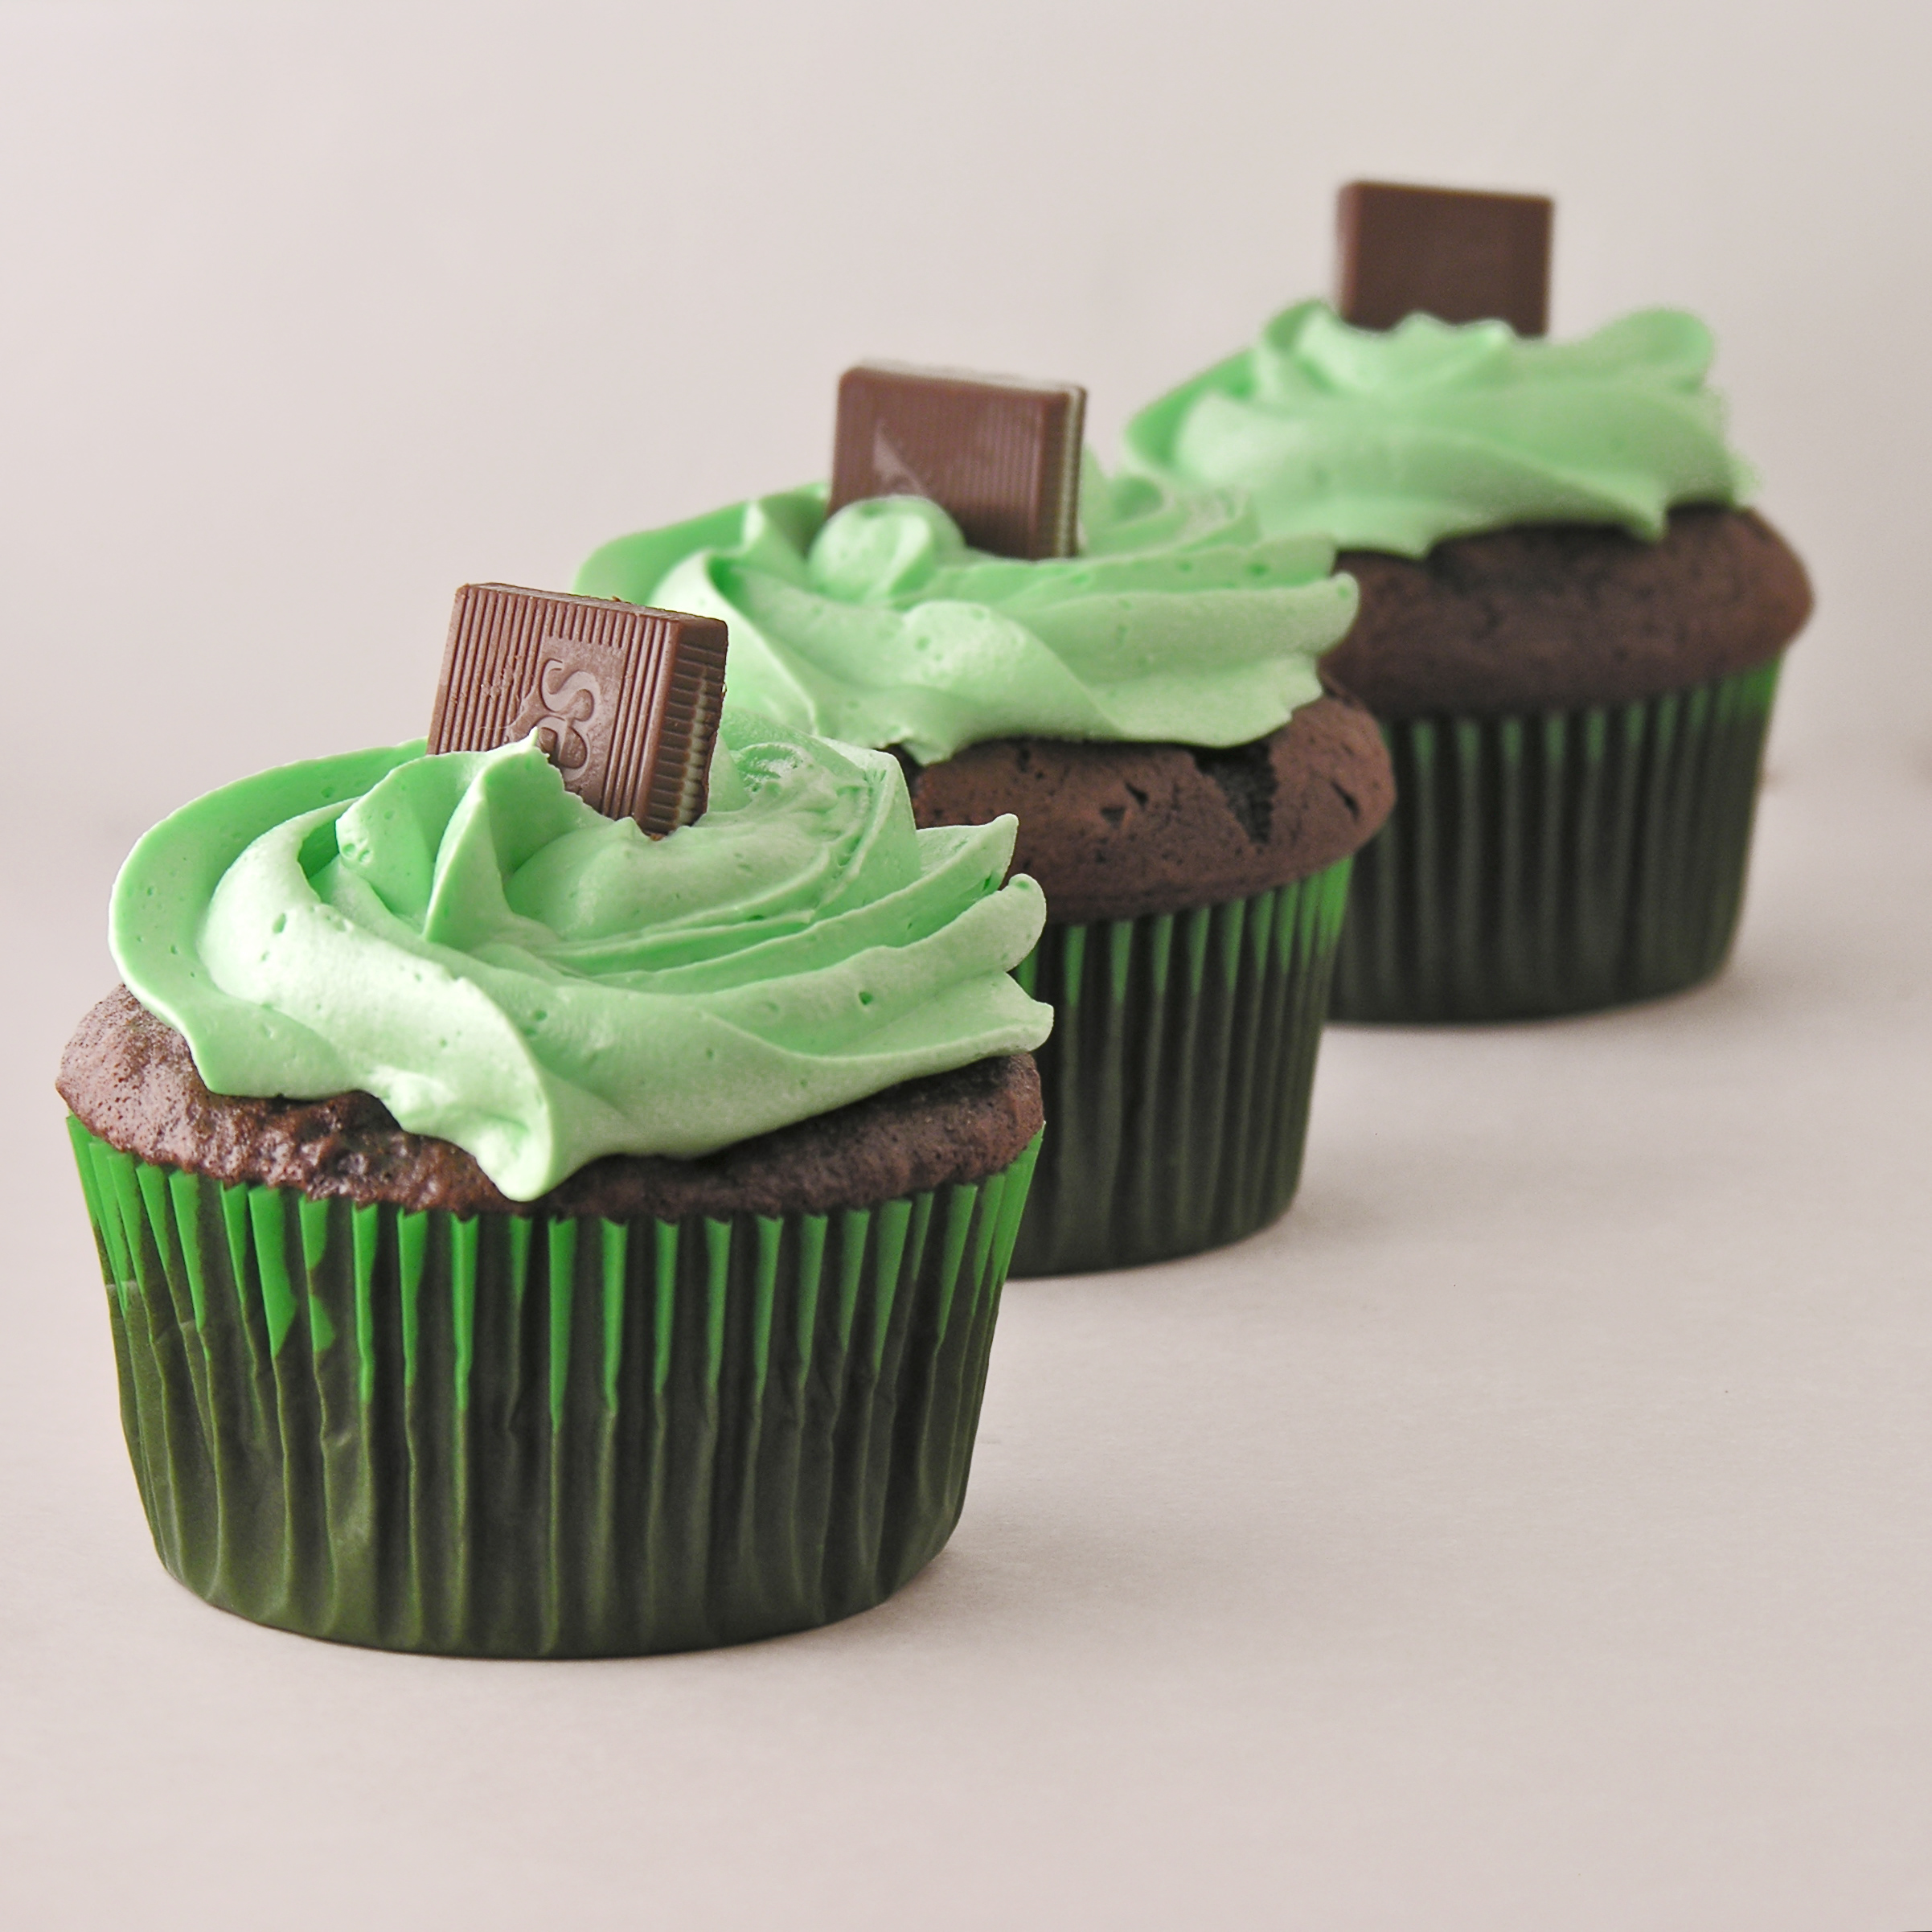 mint and chocolate. I was thinking about those yummy chocolate ...